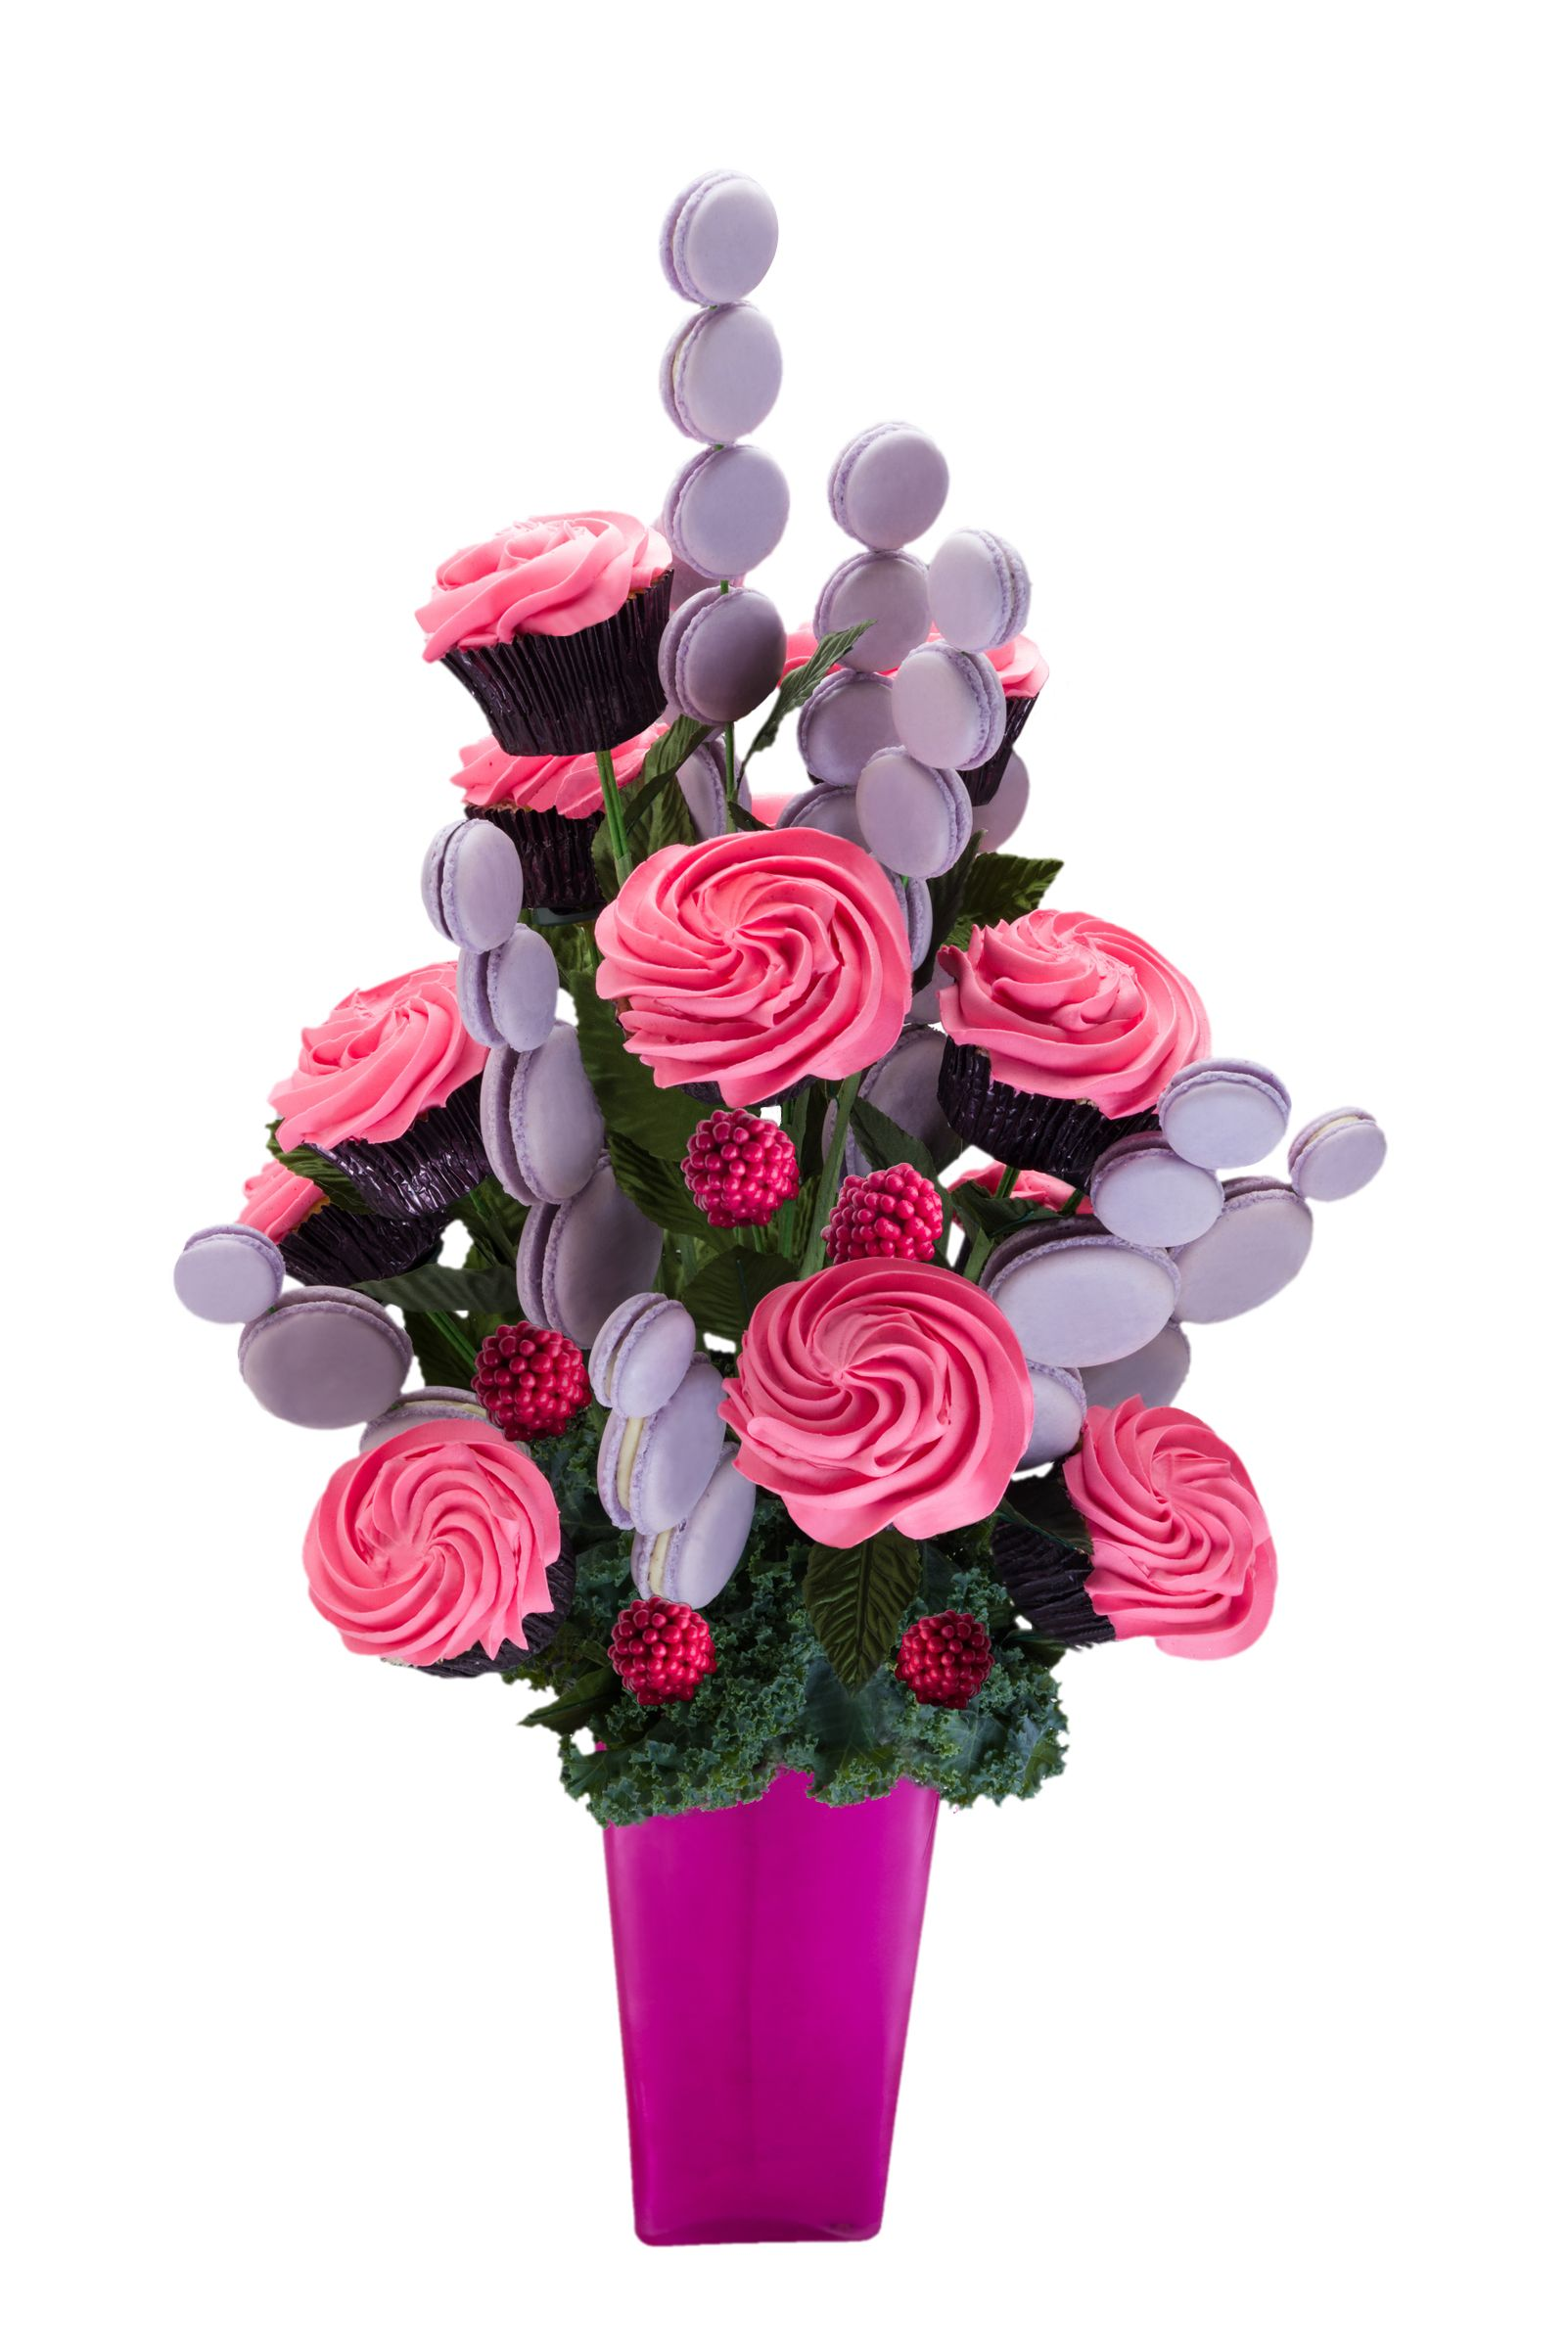 Sweet sensations available now nj desserts pinterest gourmet gourmet cupcake bouquet same day delivery in nj izmirmasajfo